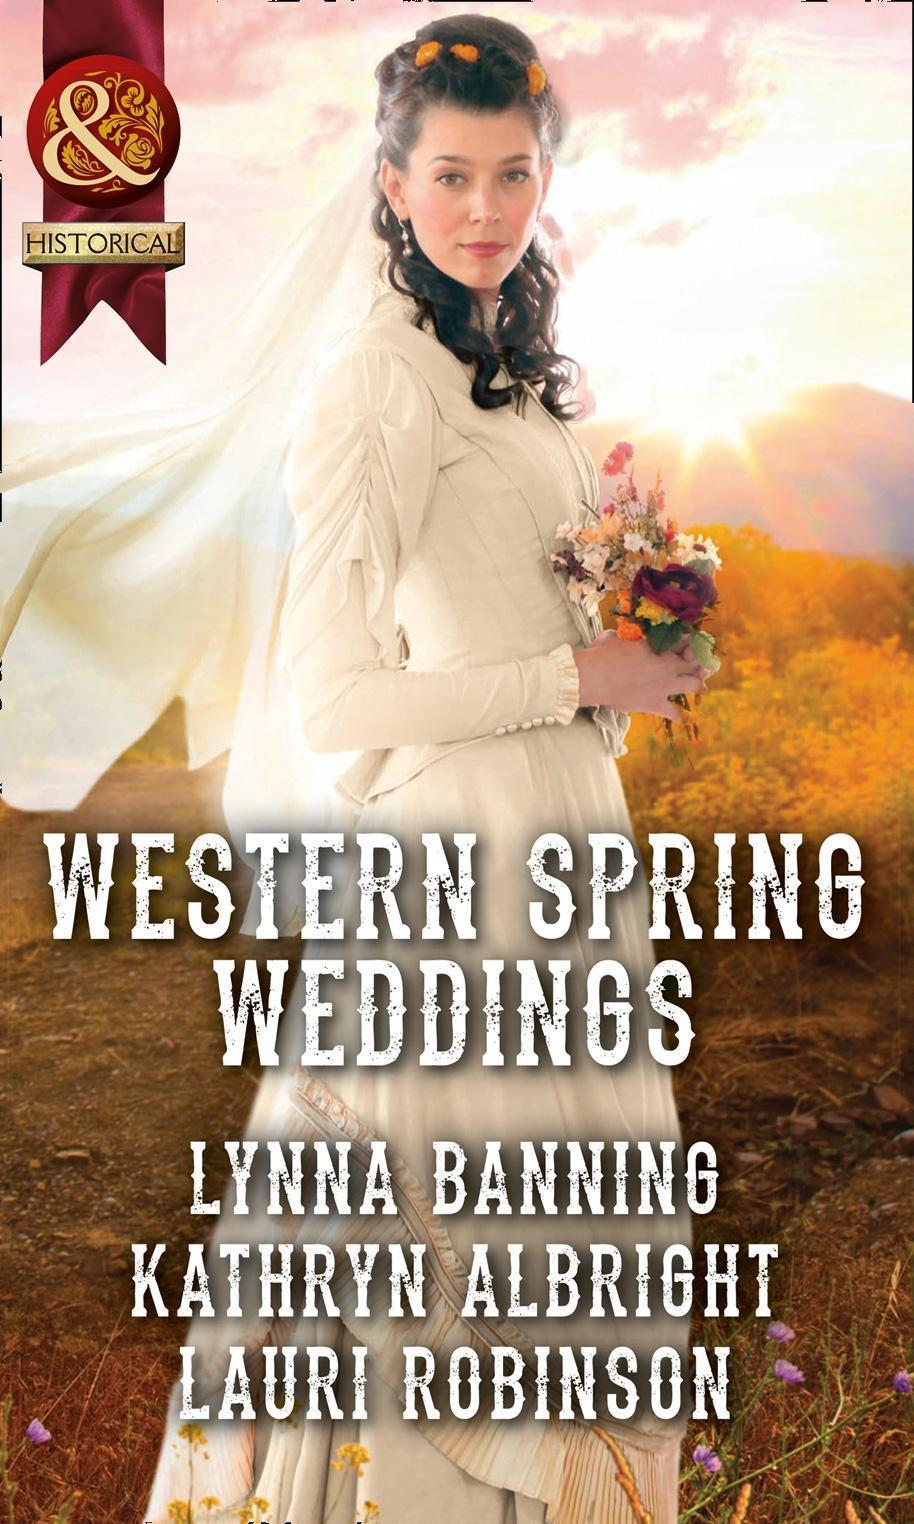 Western Spring Weddings: The City Girl and the Rancher / His Springtime Bride / When a Cowboy Says I Do (Mills & Boon Historical)